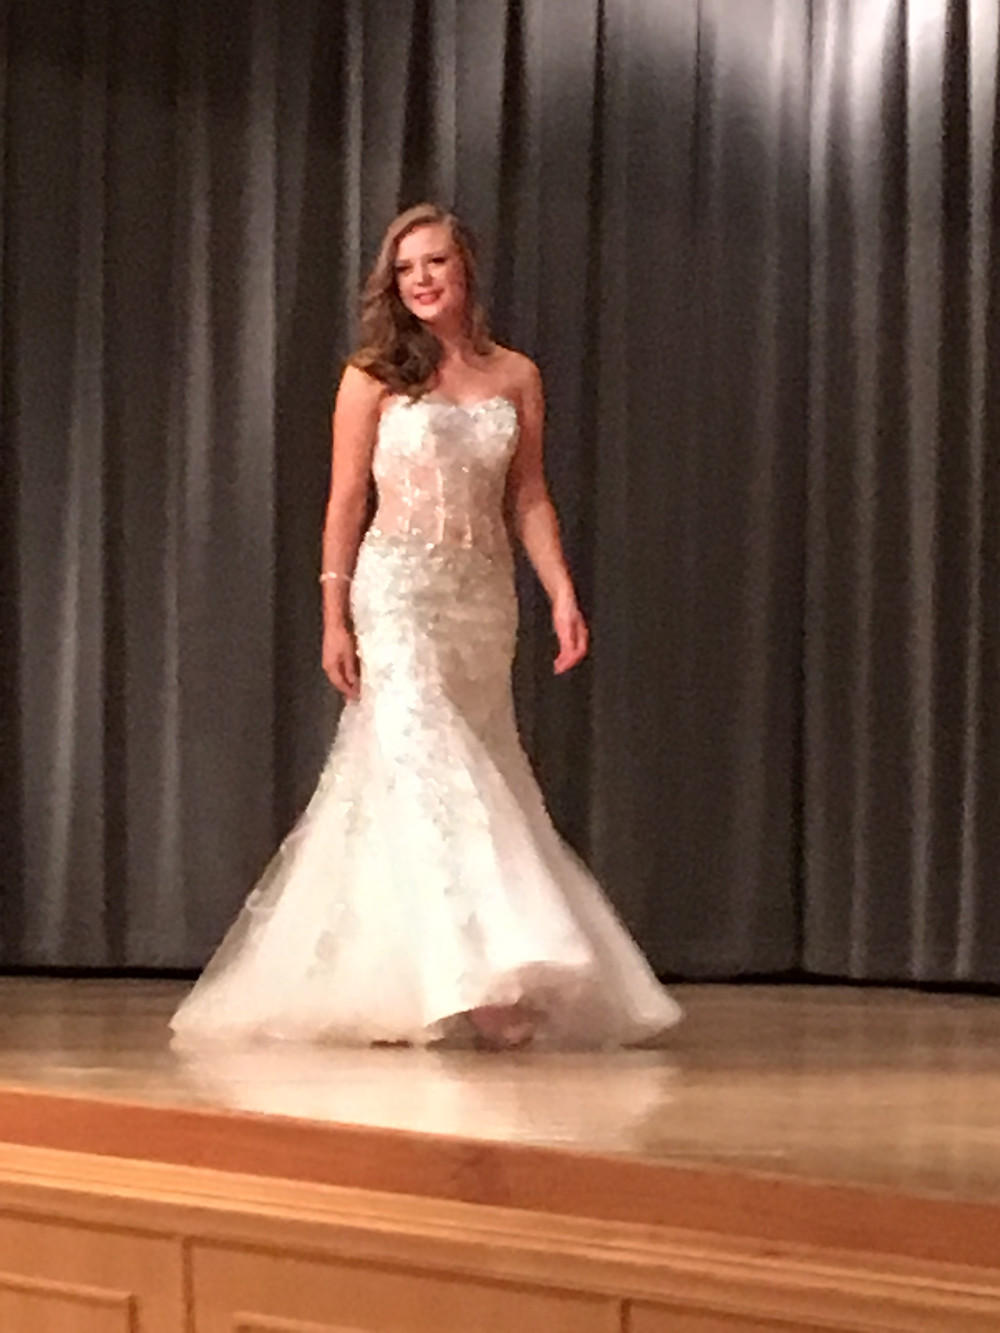 Leah Taylor, Miss Portales. Photo by Jena Slater